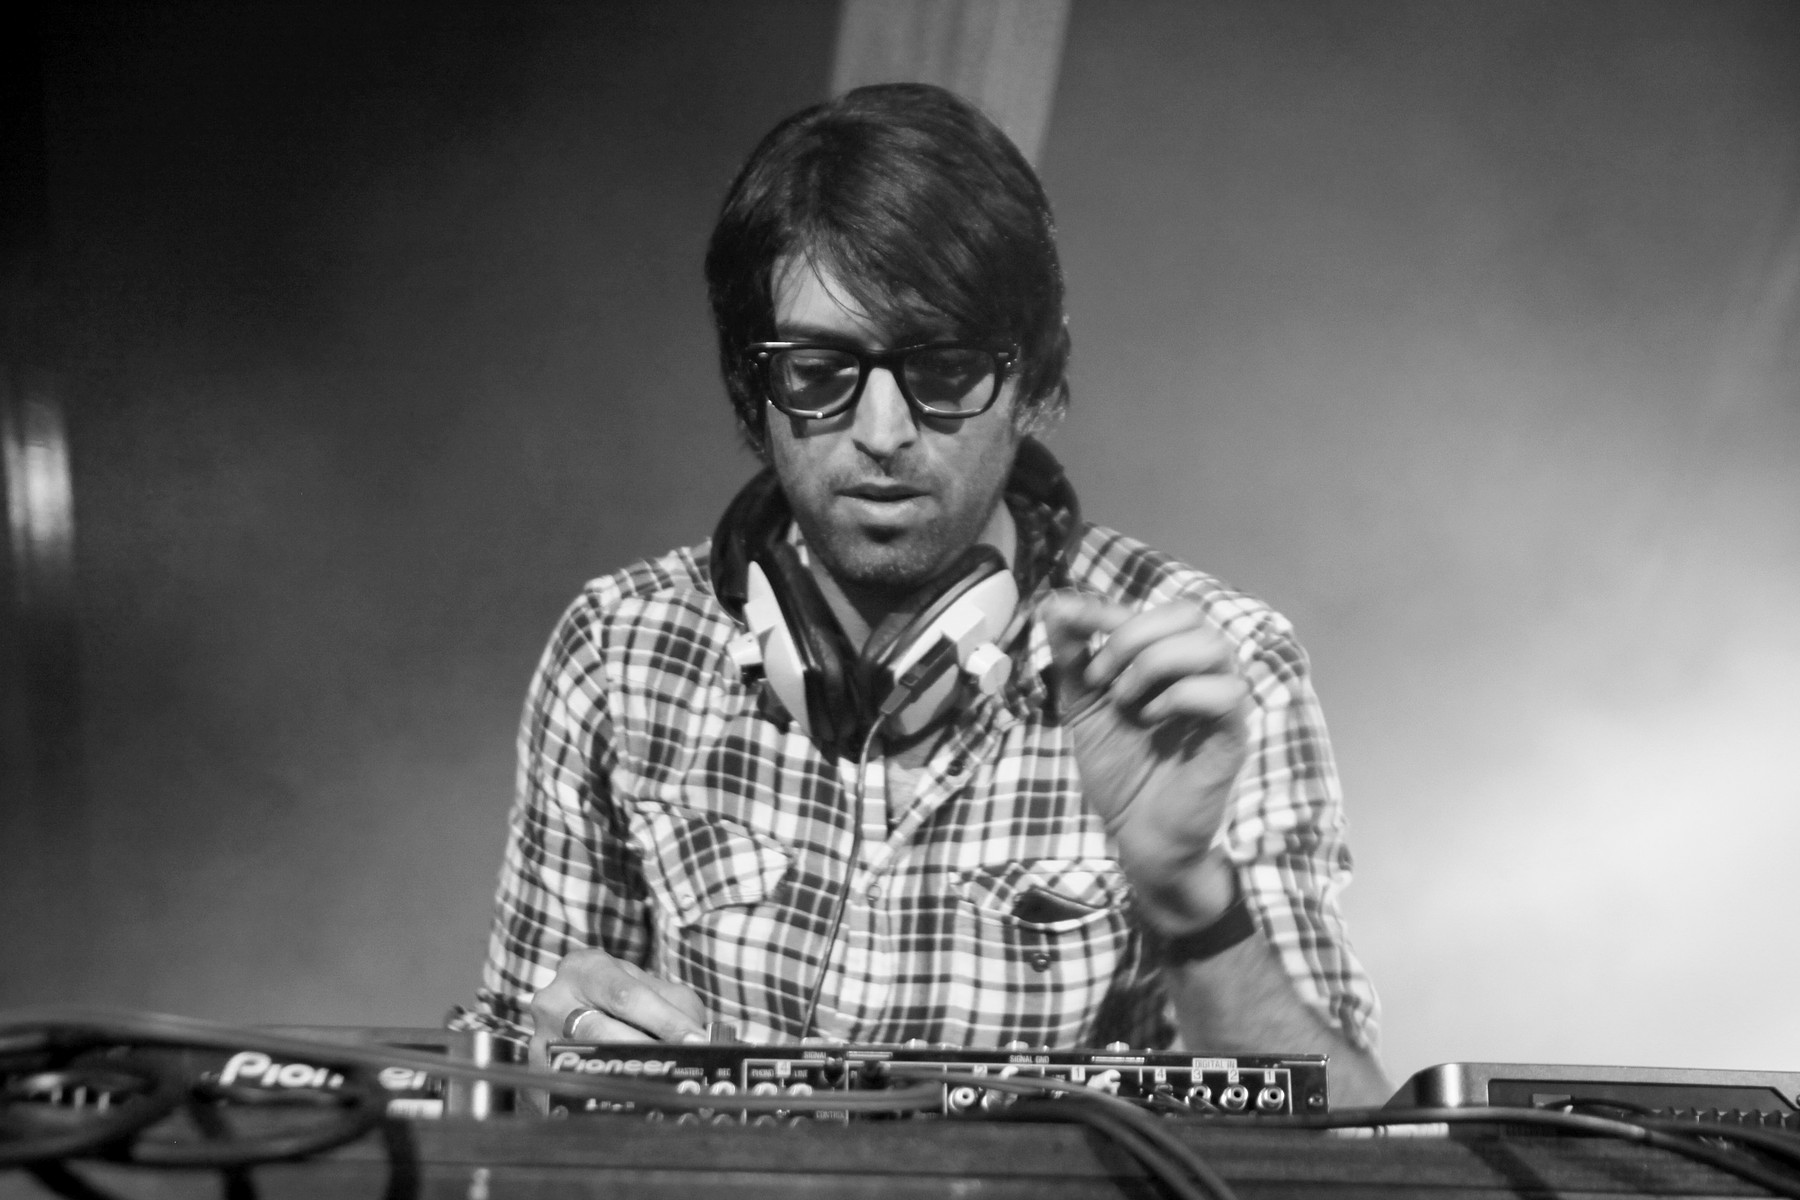 erol_alkan06_website_image_gallery_wuxga